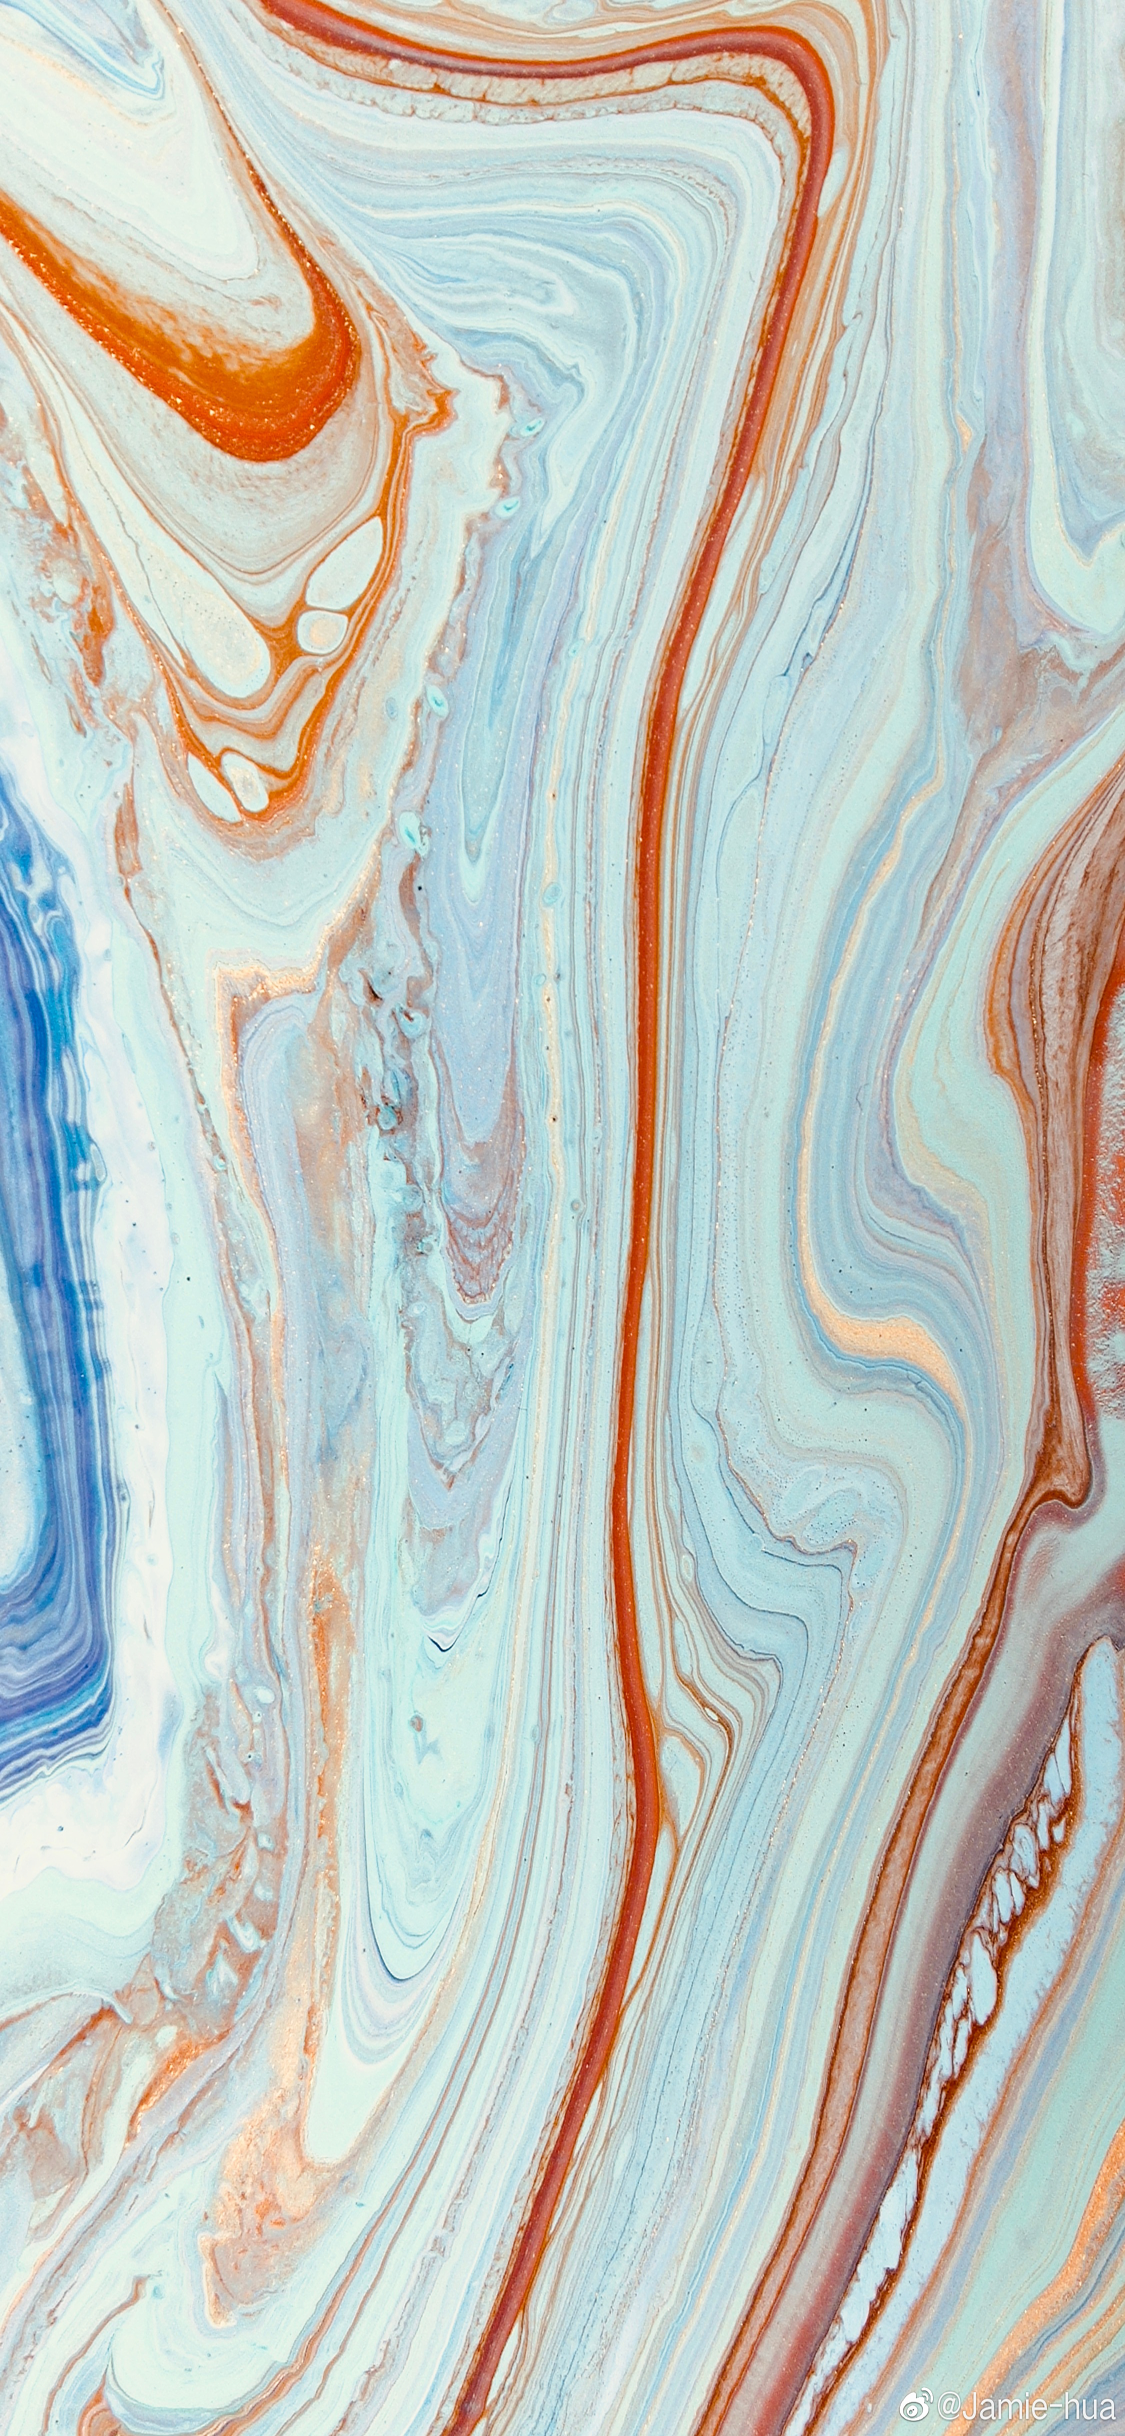 20 Aesthetic Abstract Wallpapers For Iphone 11 Pro Fhd Resolution 2020 おしゃれな壁紙背景 壁紙 おしゃれな壁紙